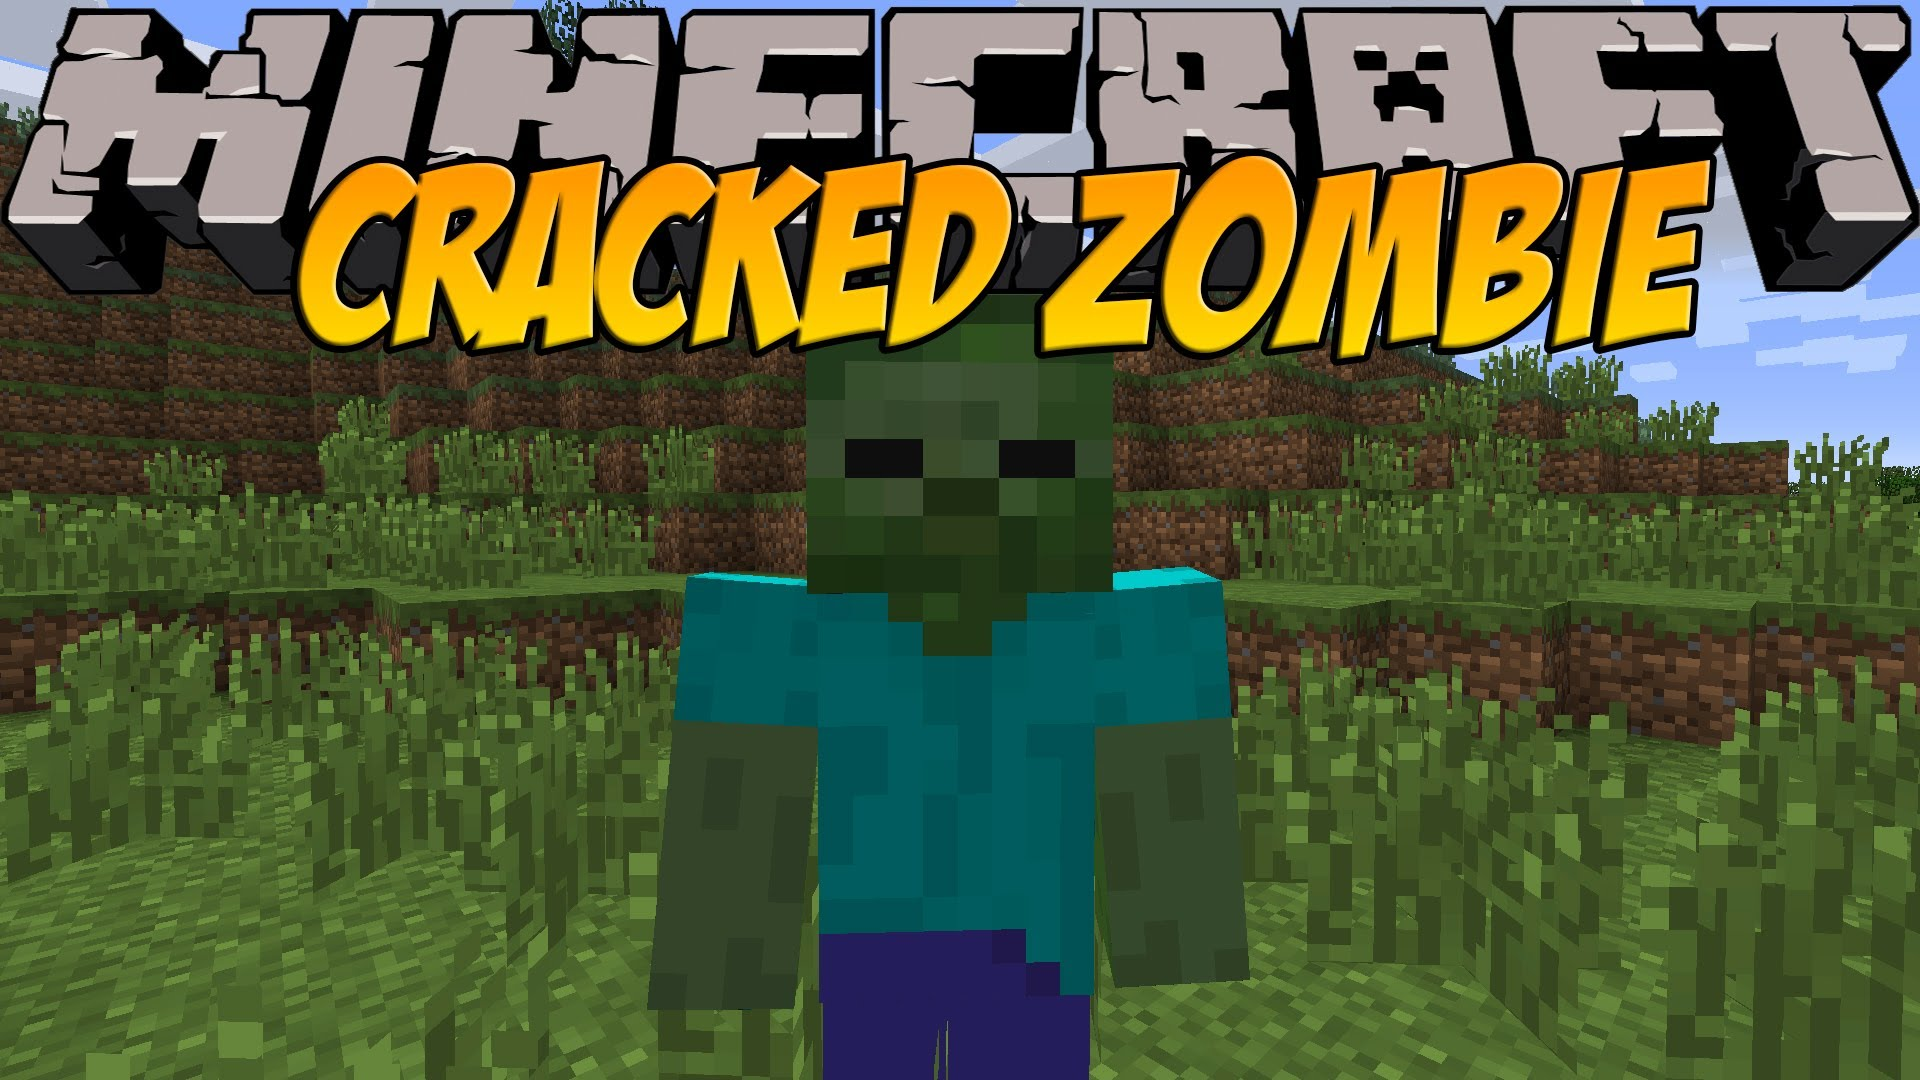 CrackedZombie Mod for Minecraft 1.15.1/1.15/1.14.4